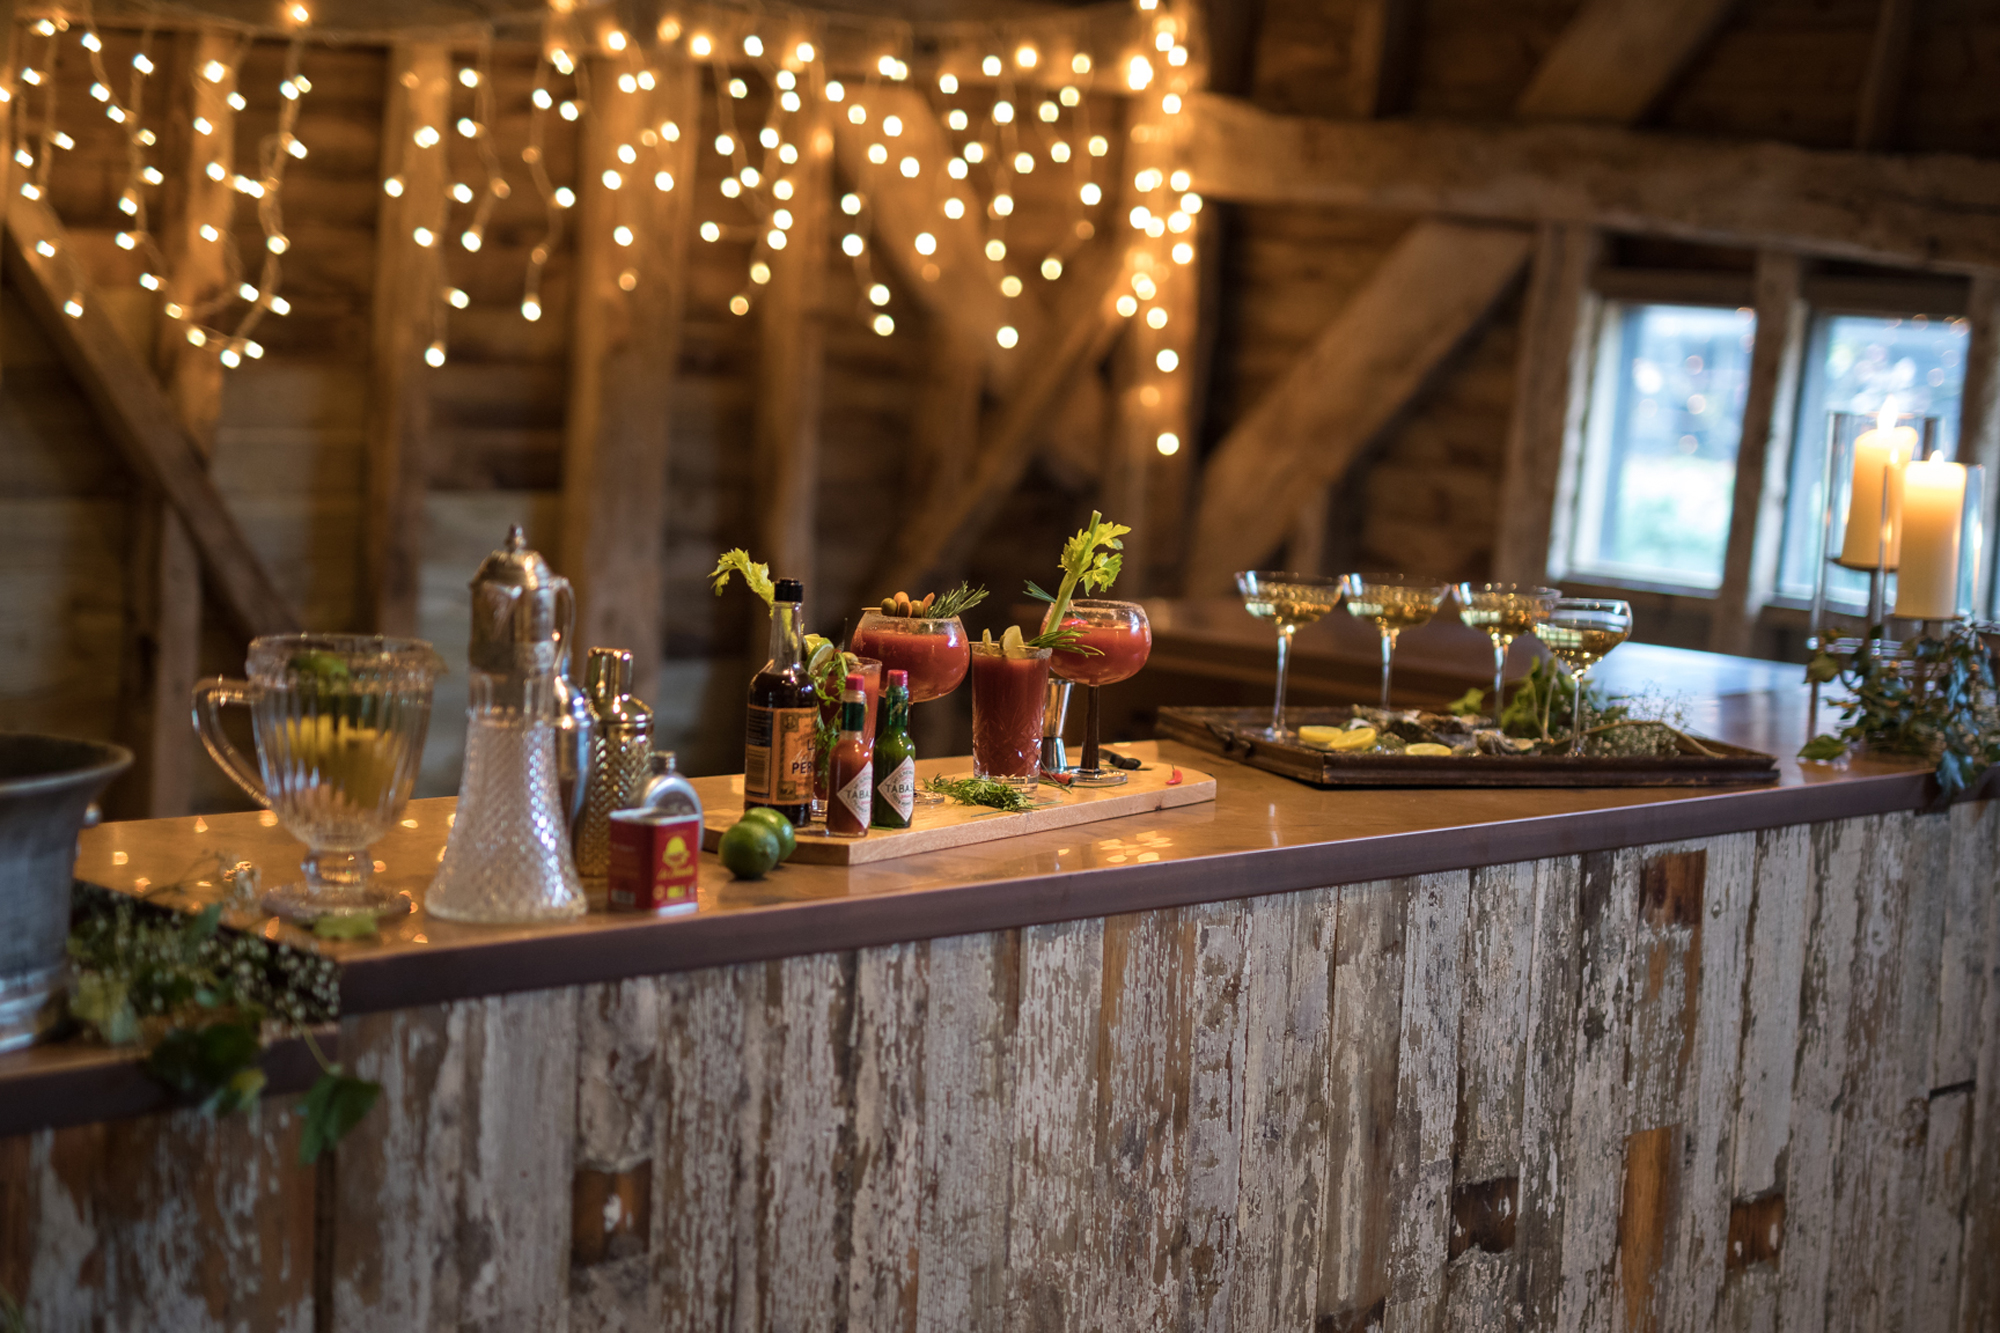 Reclaimed bar with fruit and cocktail shakers sat on copper worktop